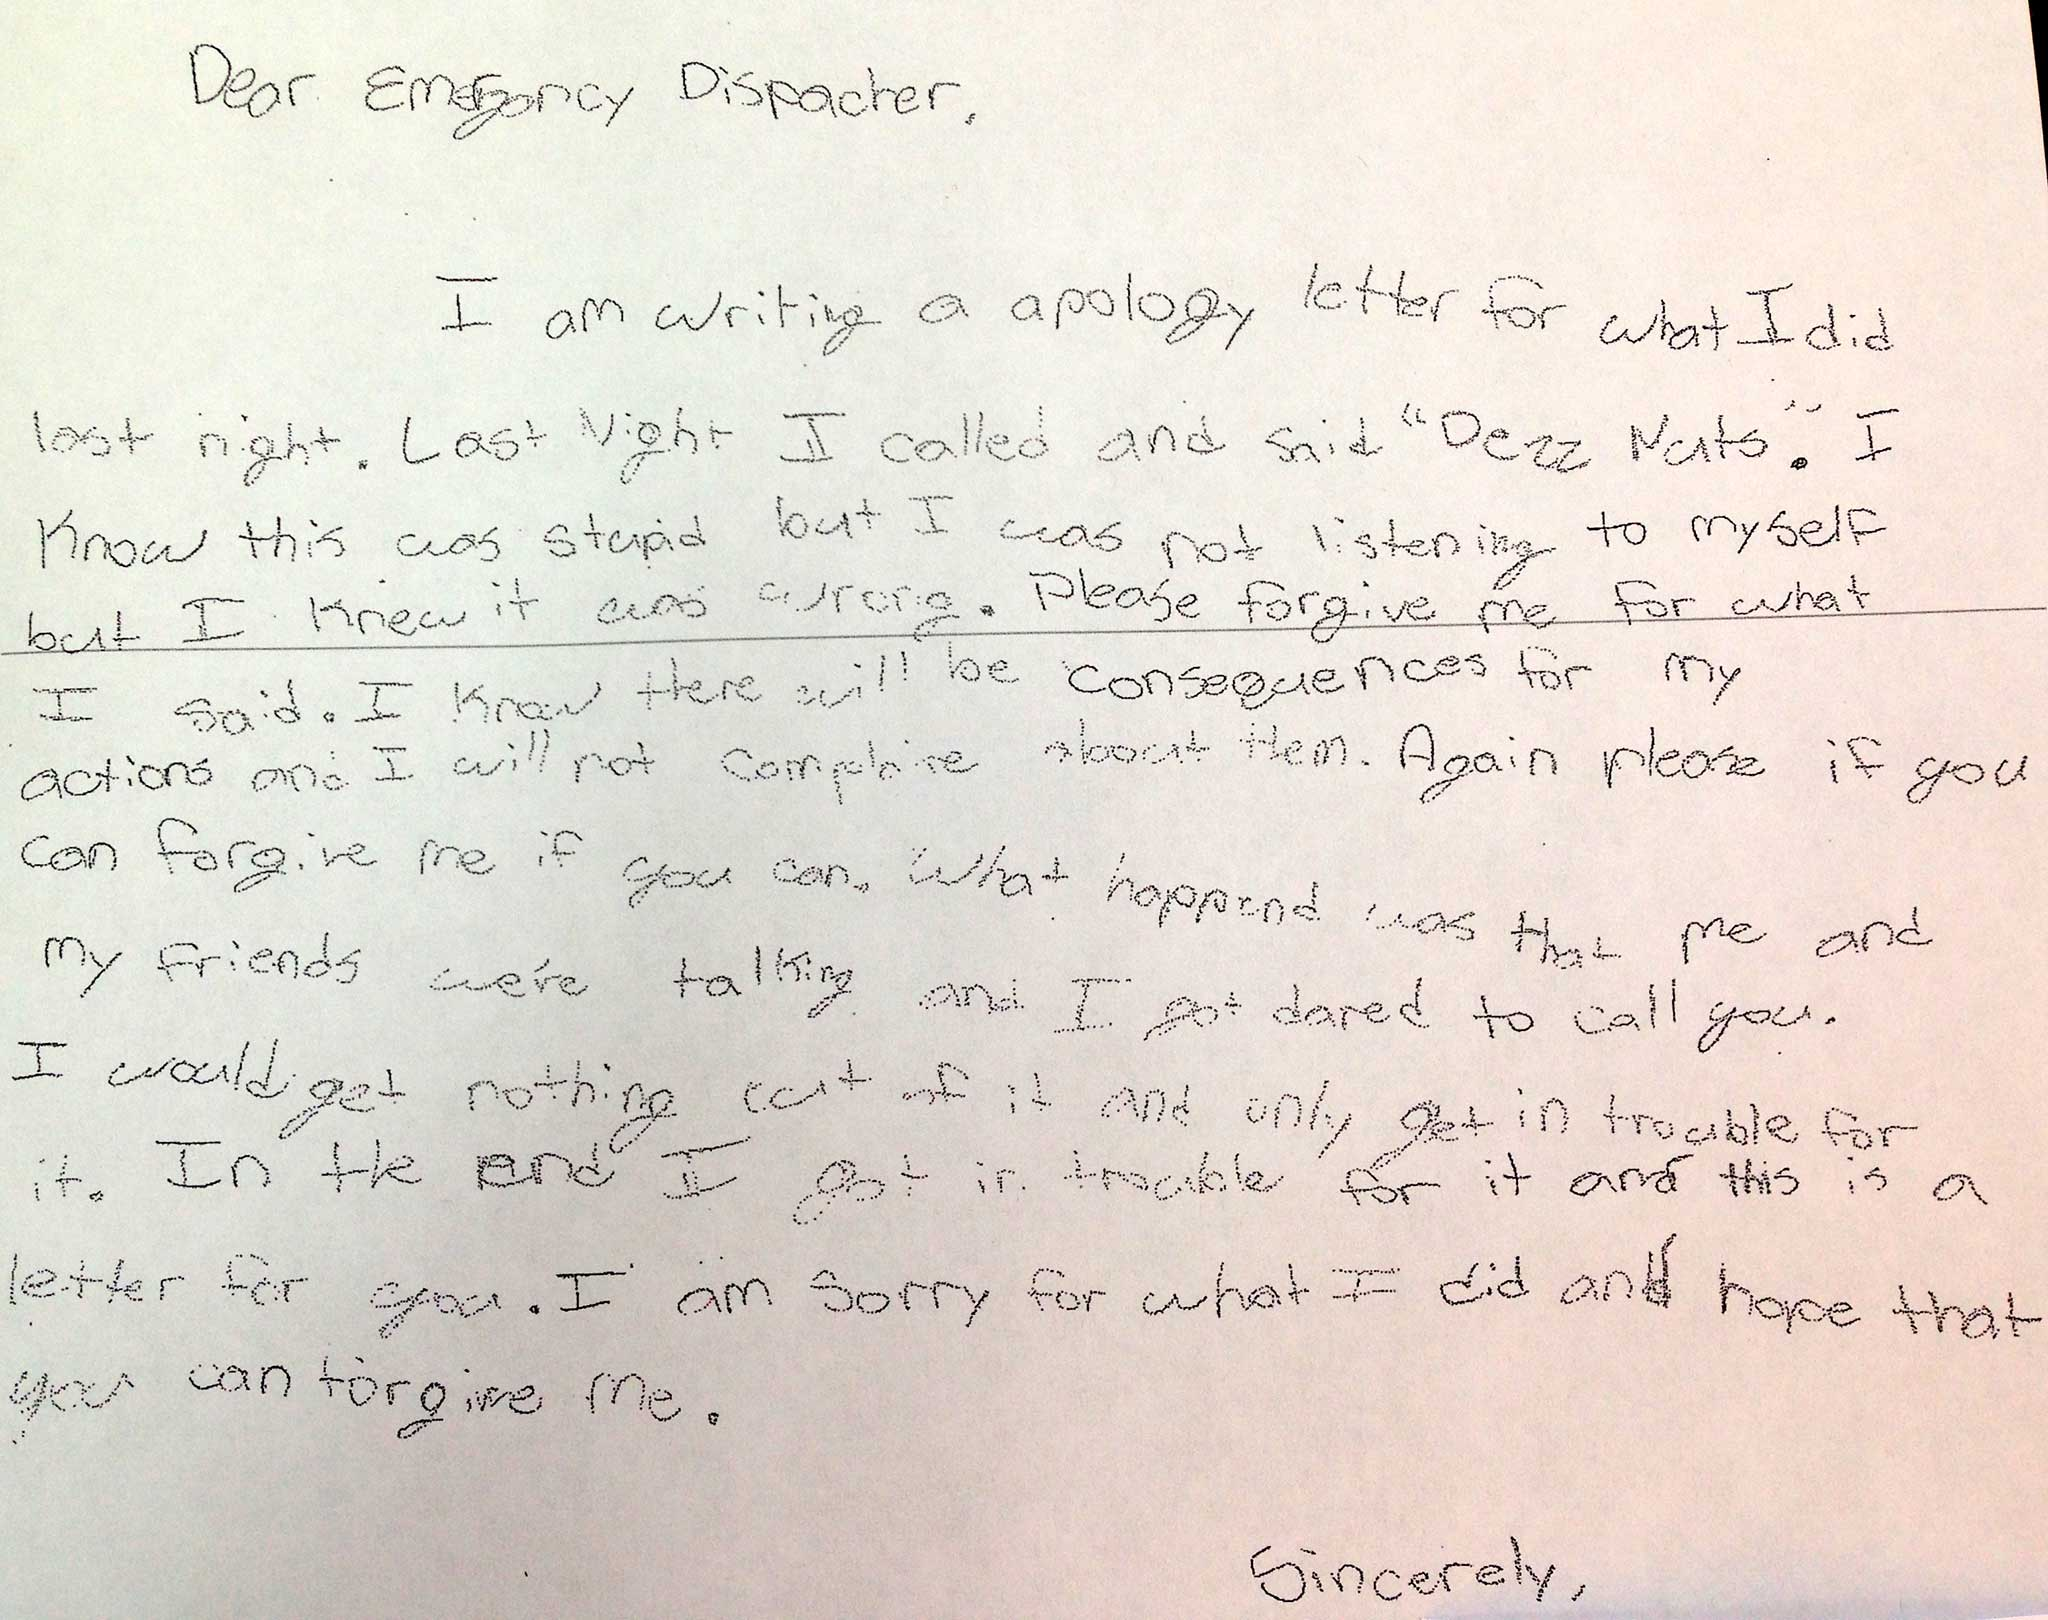 US child writes apology letter to operaters after ringing emergency